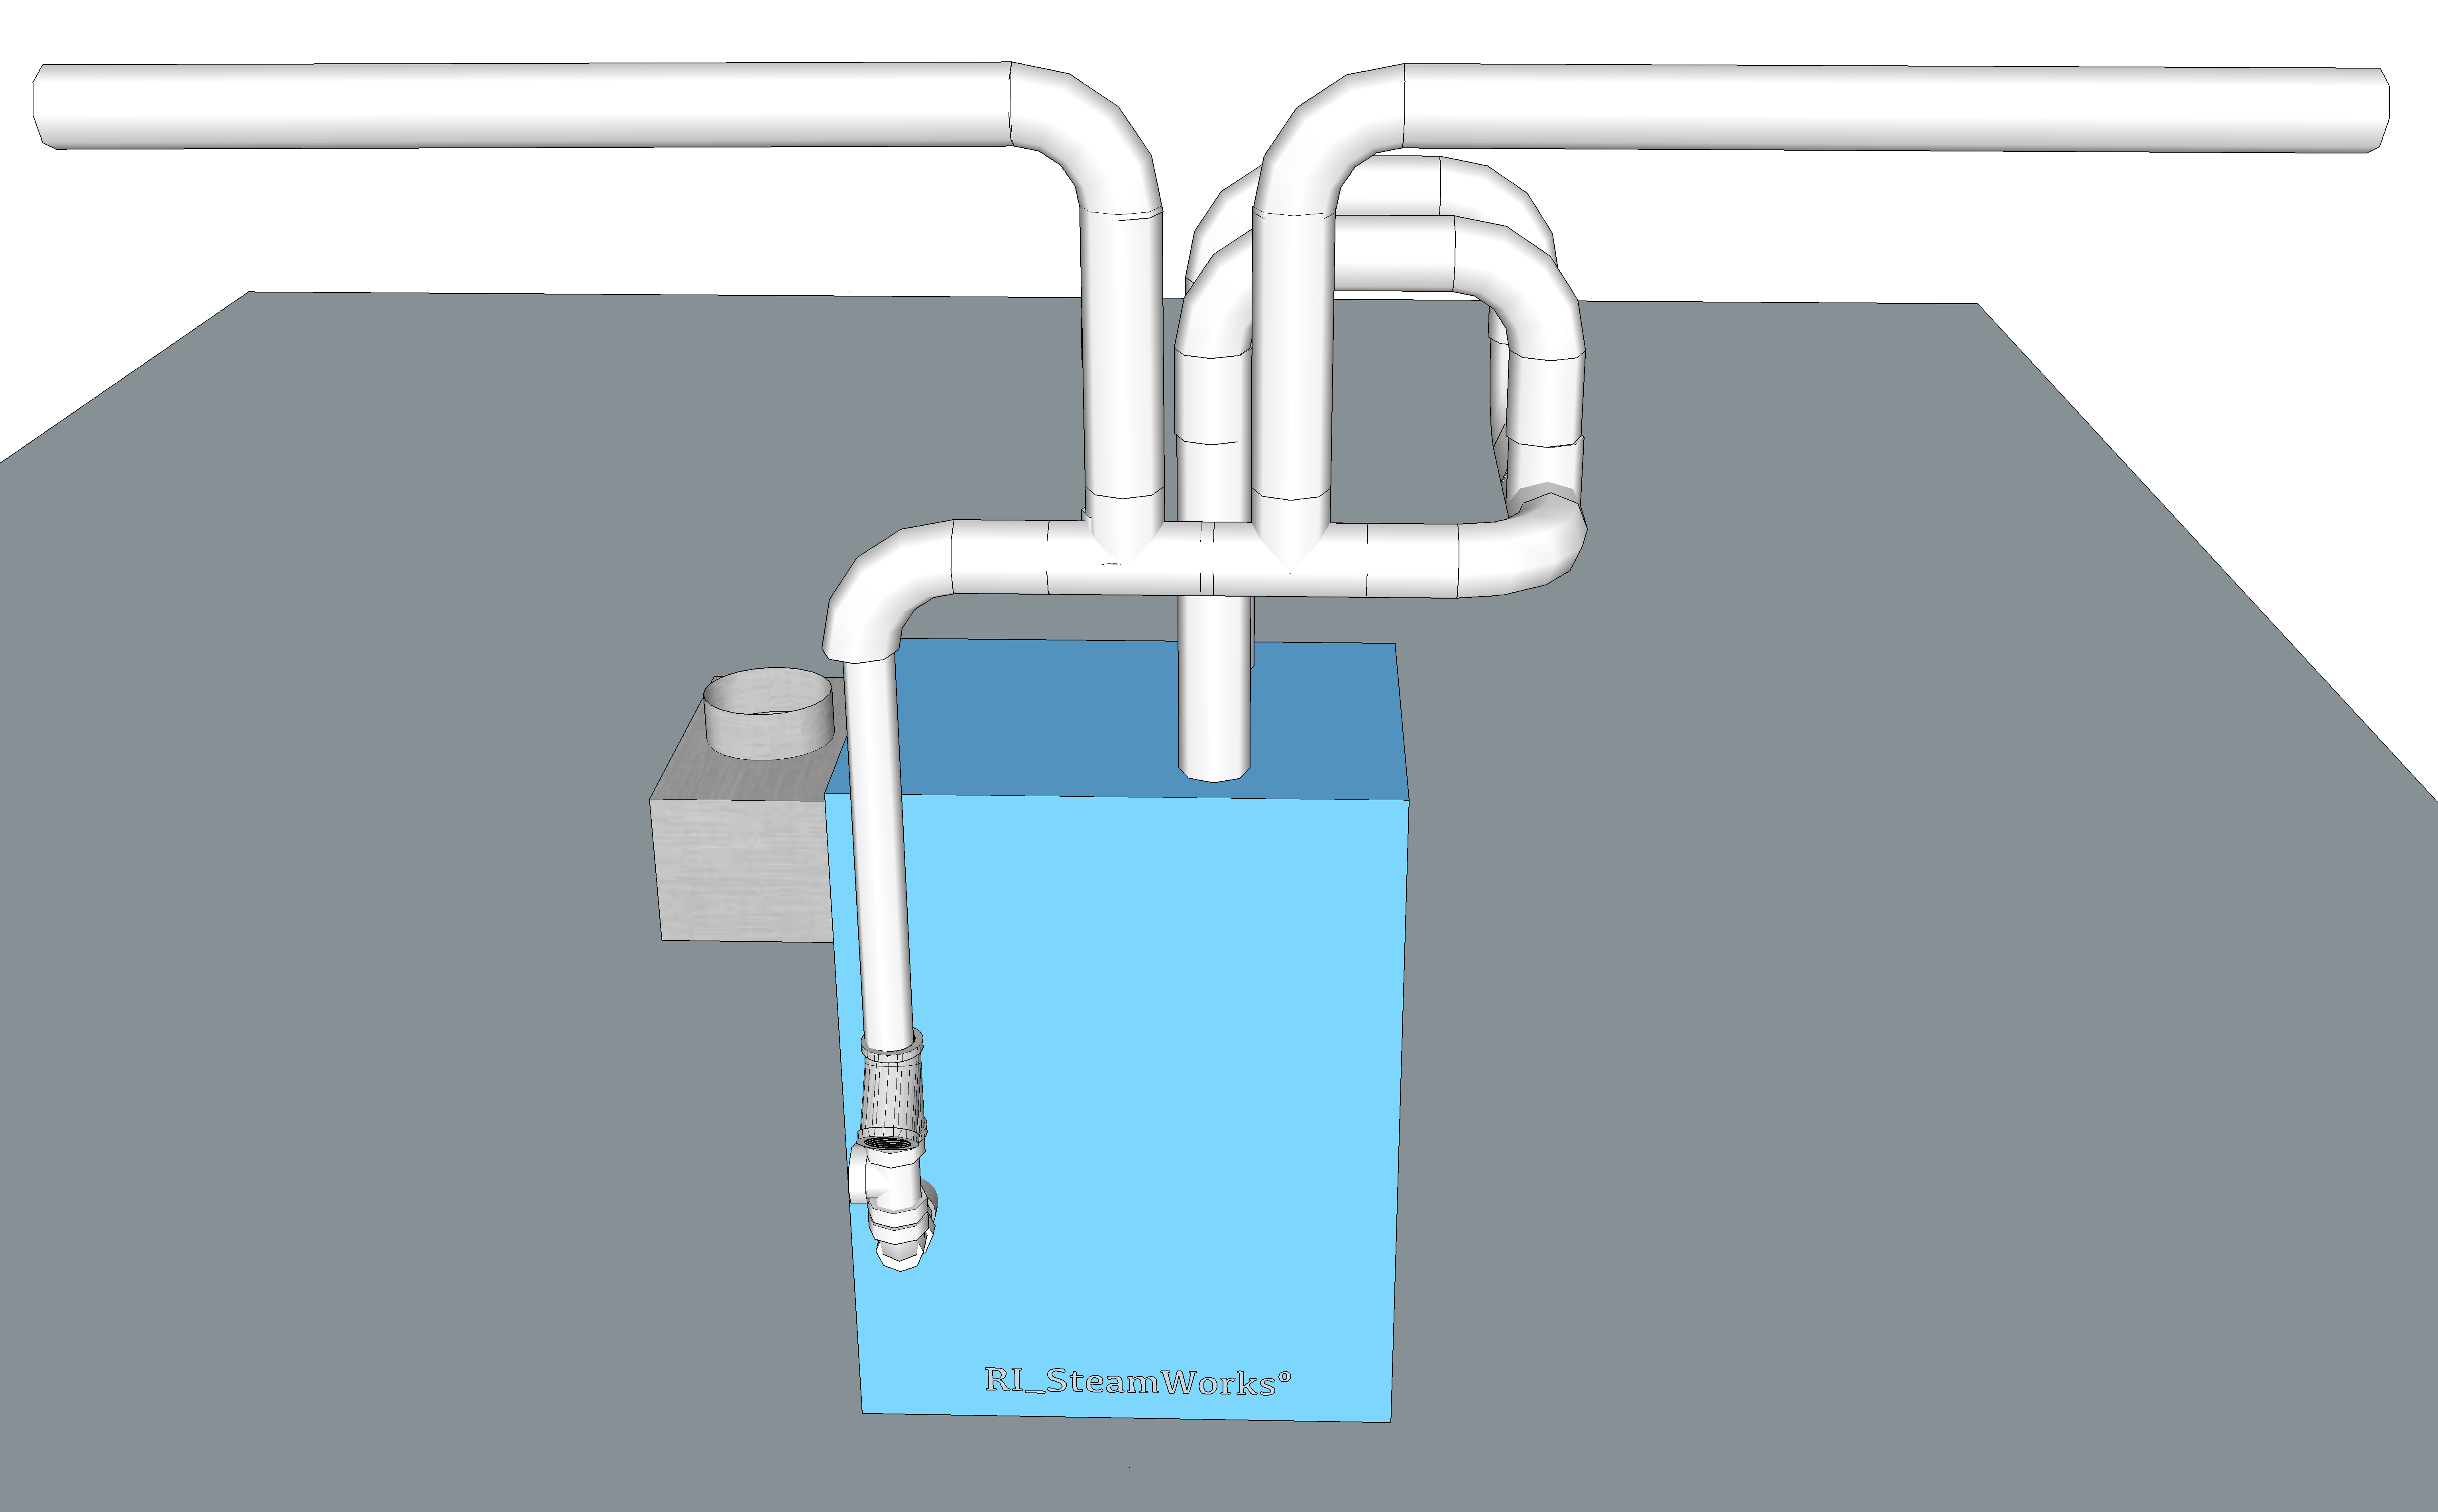 New Steam Boiler Cycling On/Off — Heating Help: The Wall